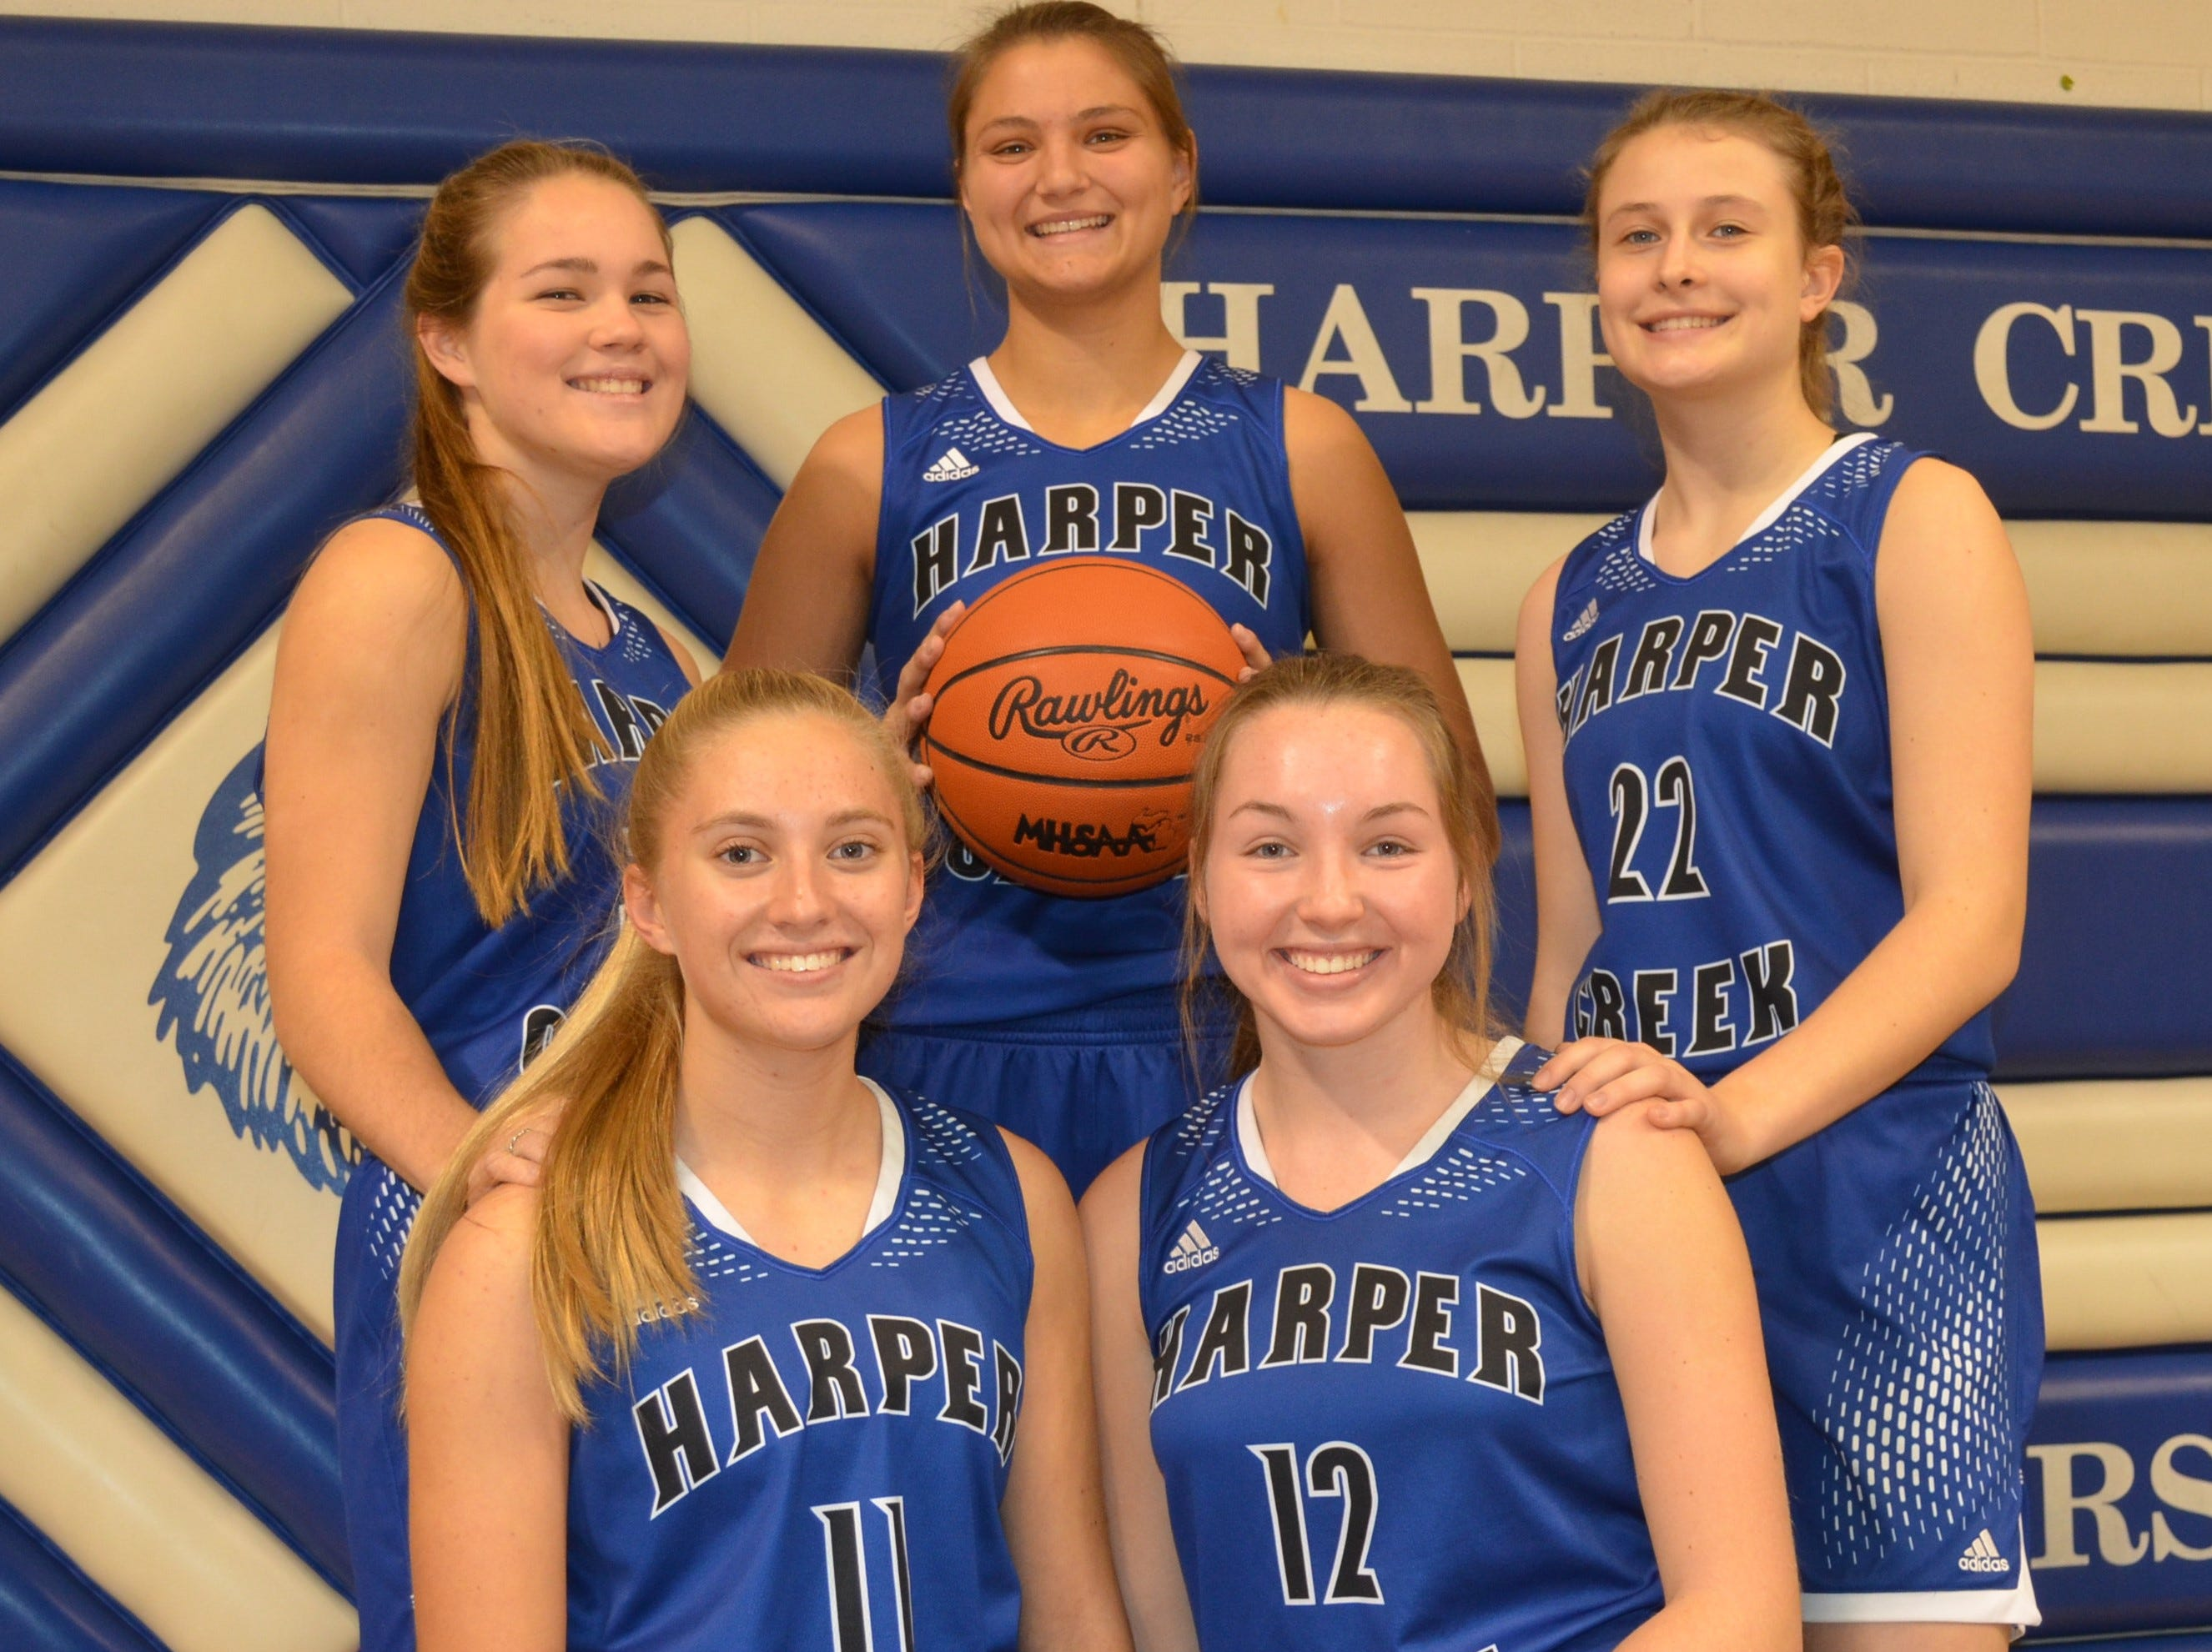 The returning leaders for the Harper Creek girls basketball team include, back row, from left, Meredith Coon, Maddie Alexander, Abbey Hicks. Front row, Maddie Thompson and Marlene Bussler